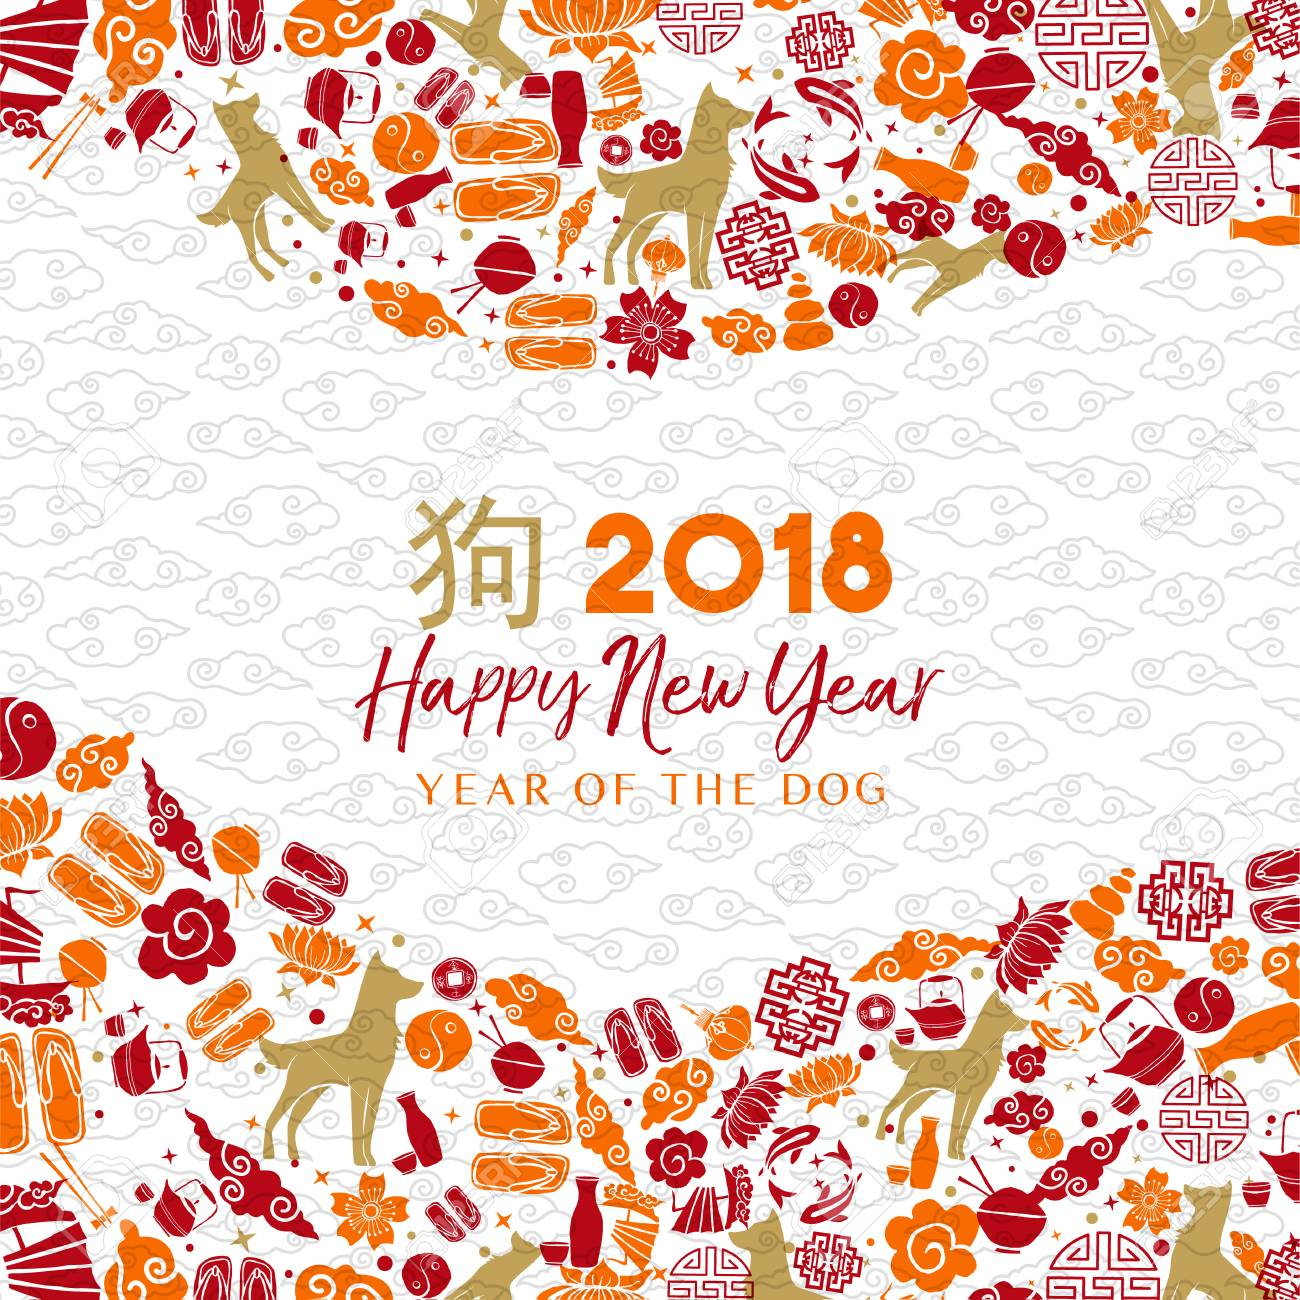 Happy Chinese New Year Of The Dog 2018 Greeting Card Illustration